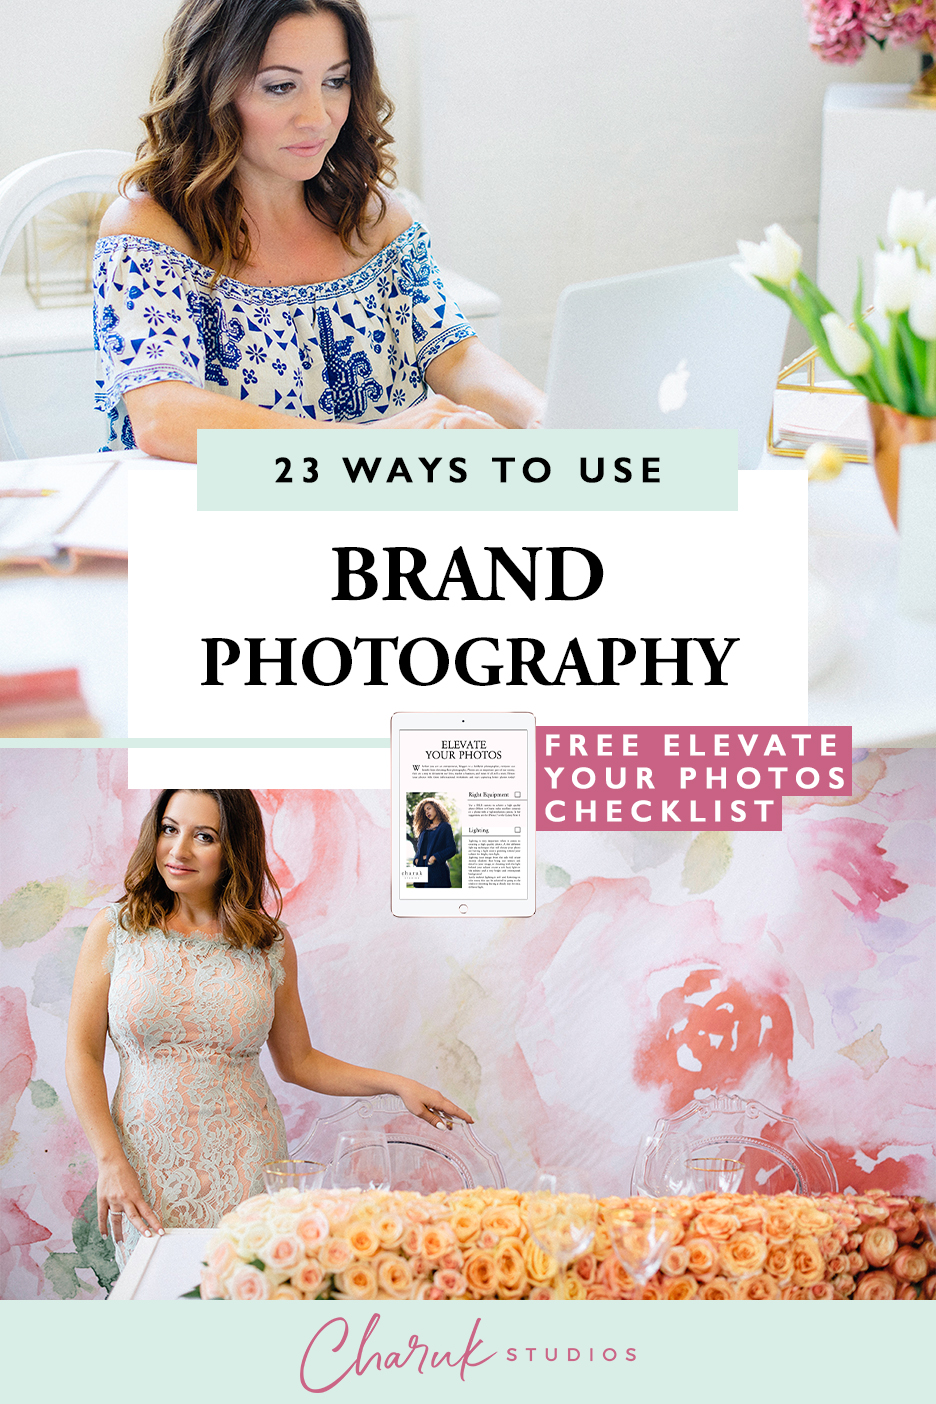 23 Ways To Use Brand Photography by Charuk Studios